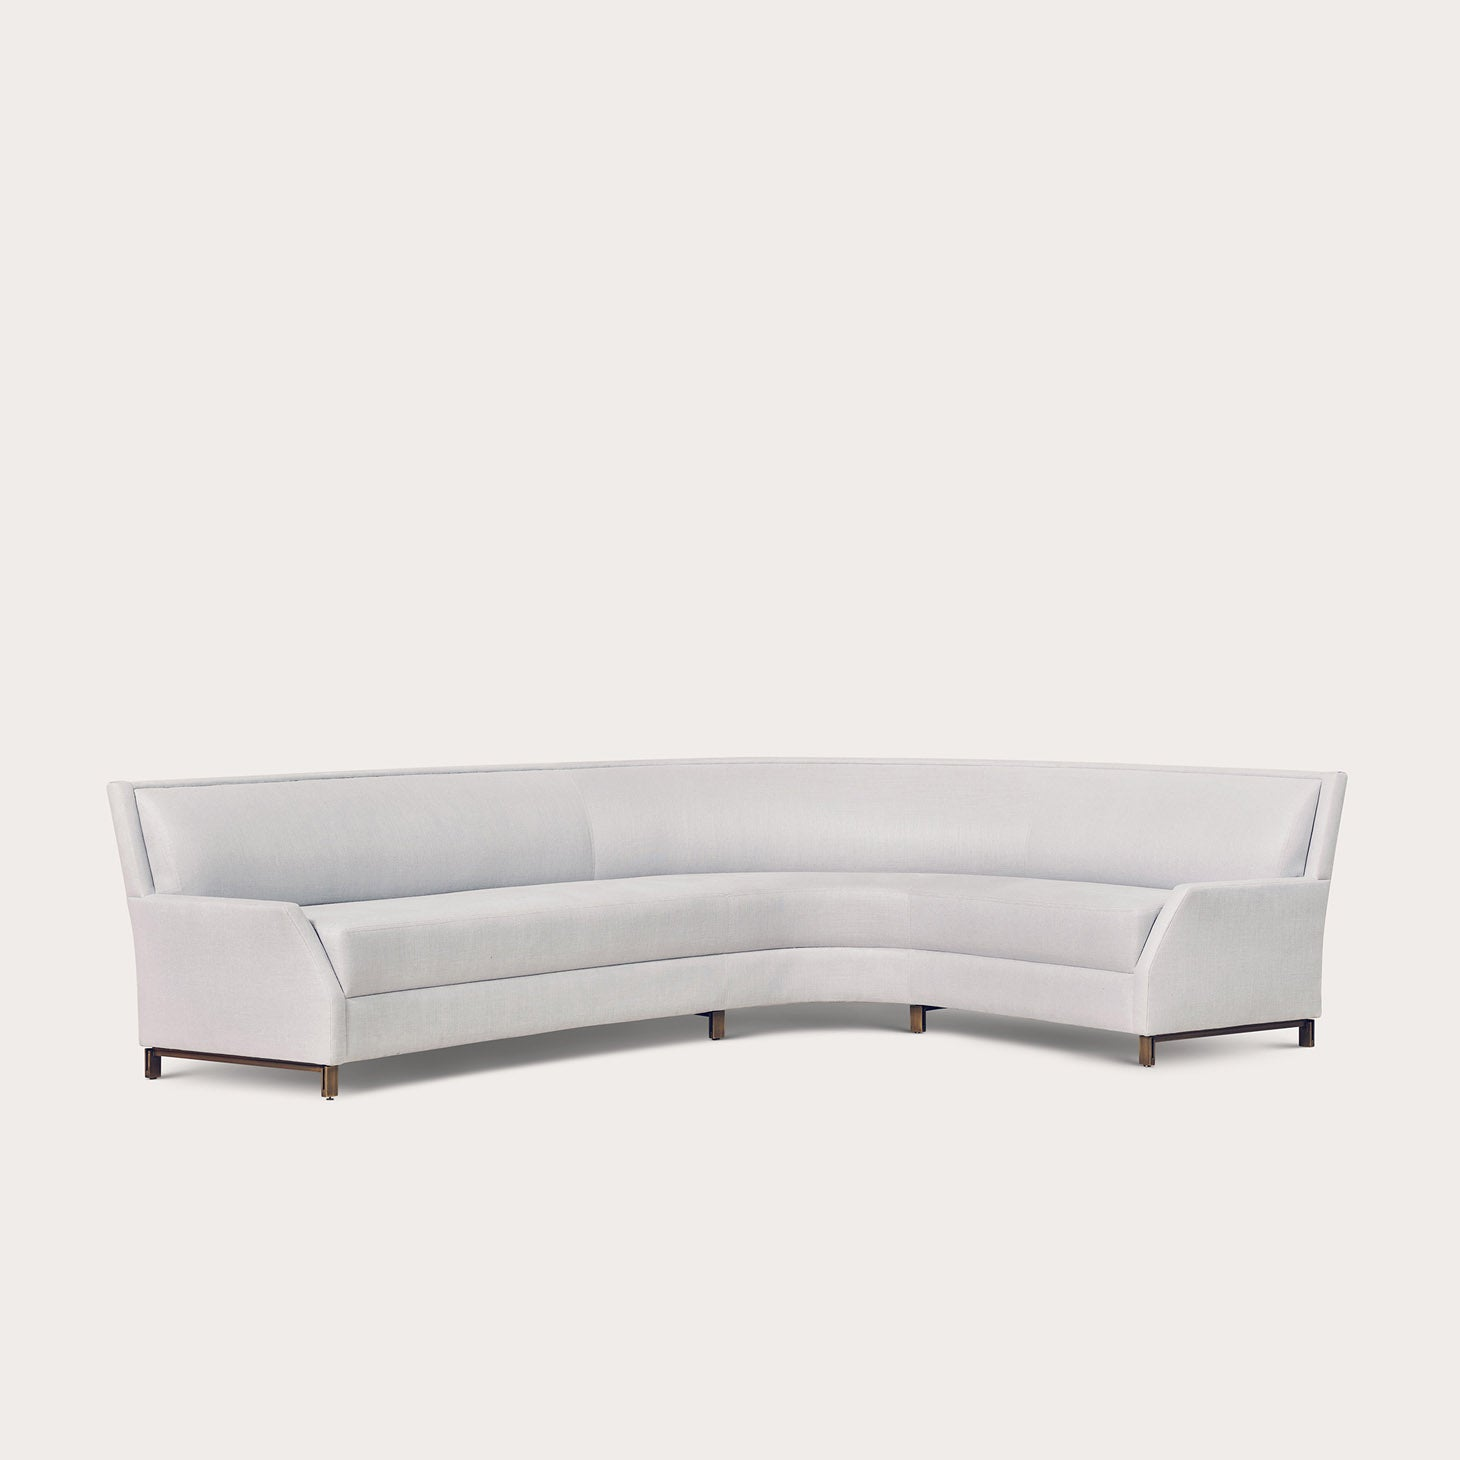 Perry Street Boomerang Seating Yabu Pushelberg Designer Furniture Sku: 990-240-10001